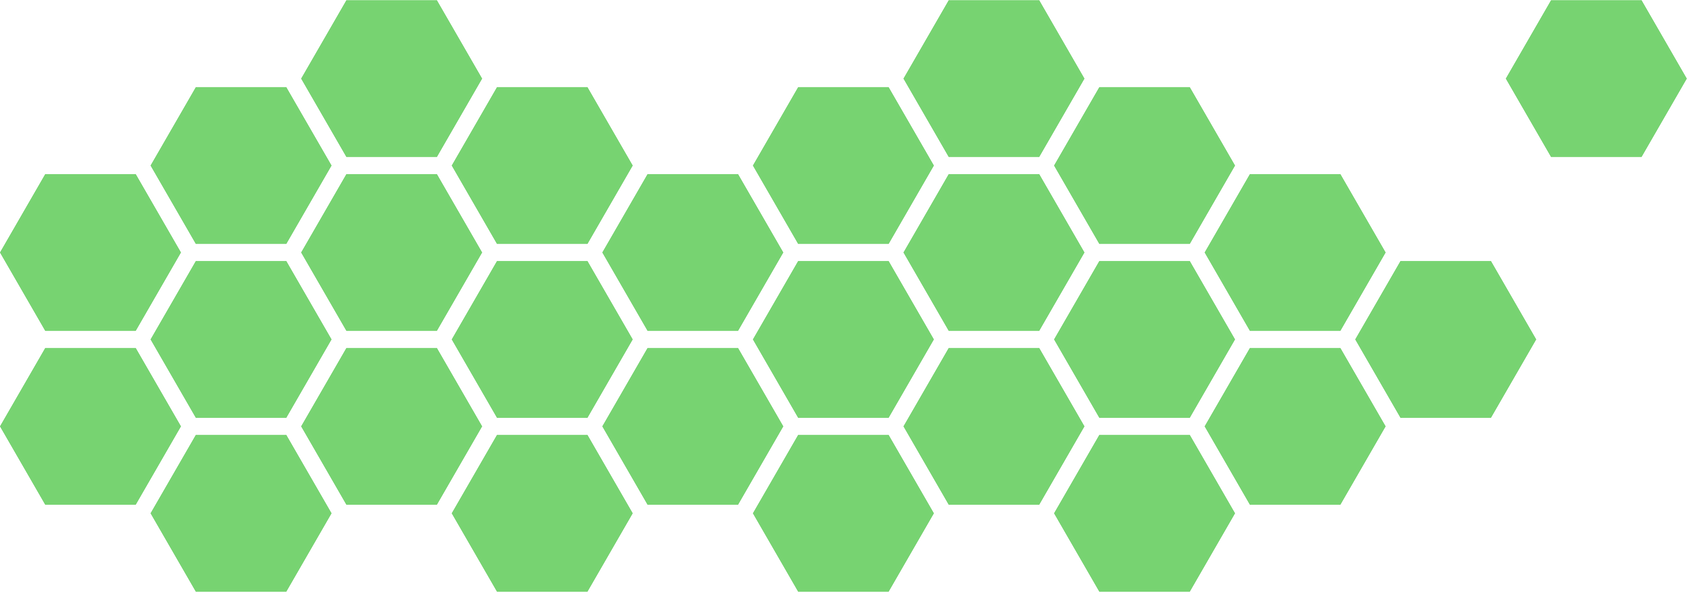 Hexagon BG-06.png